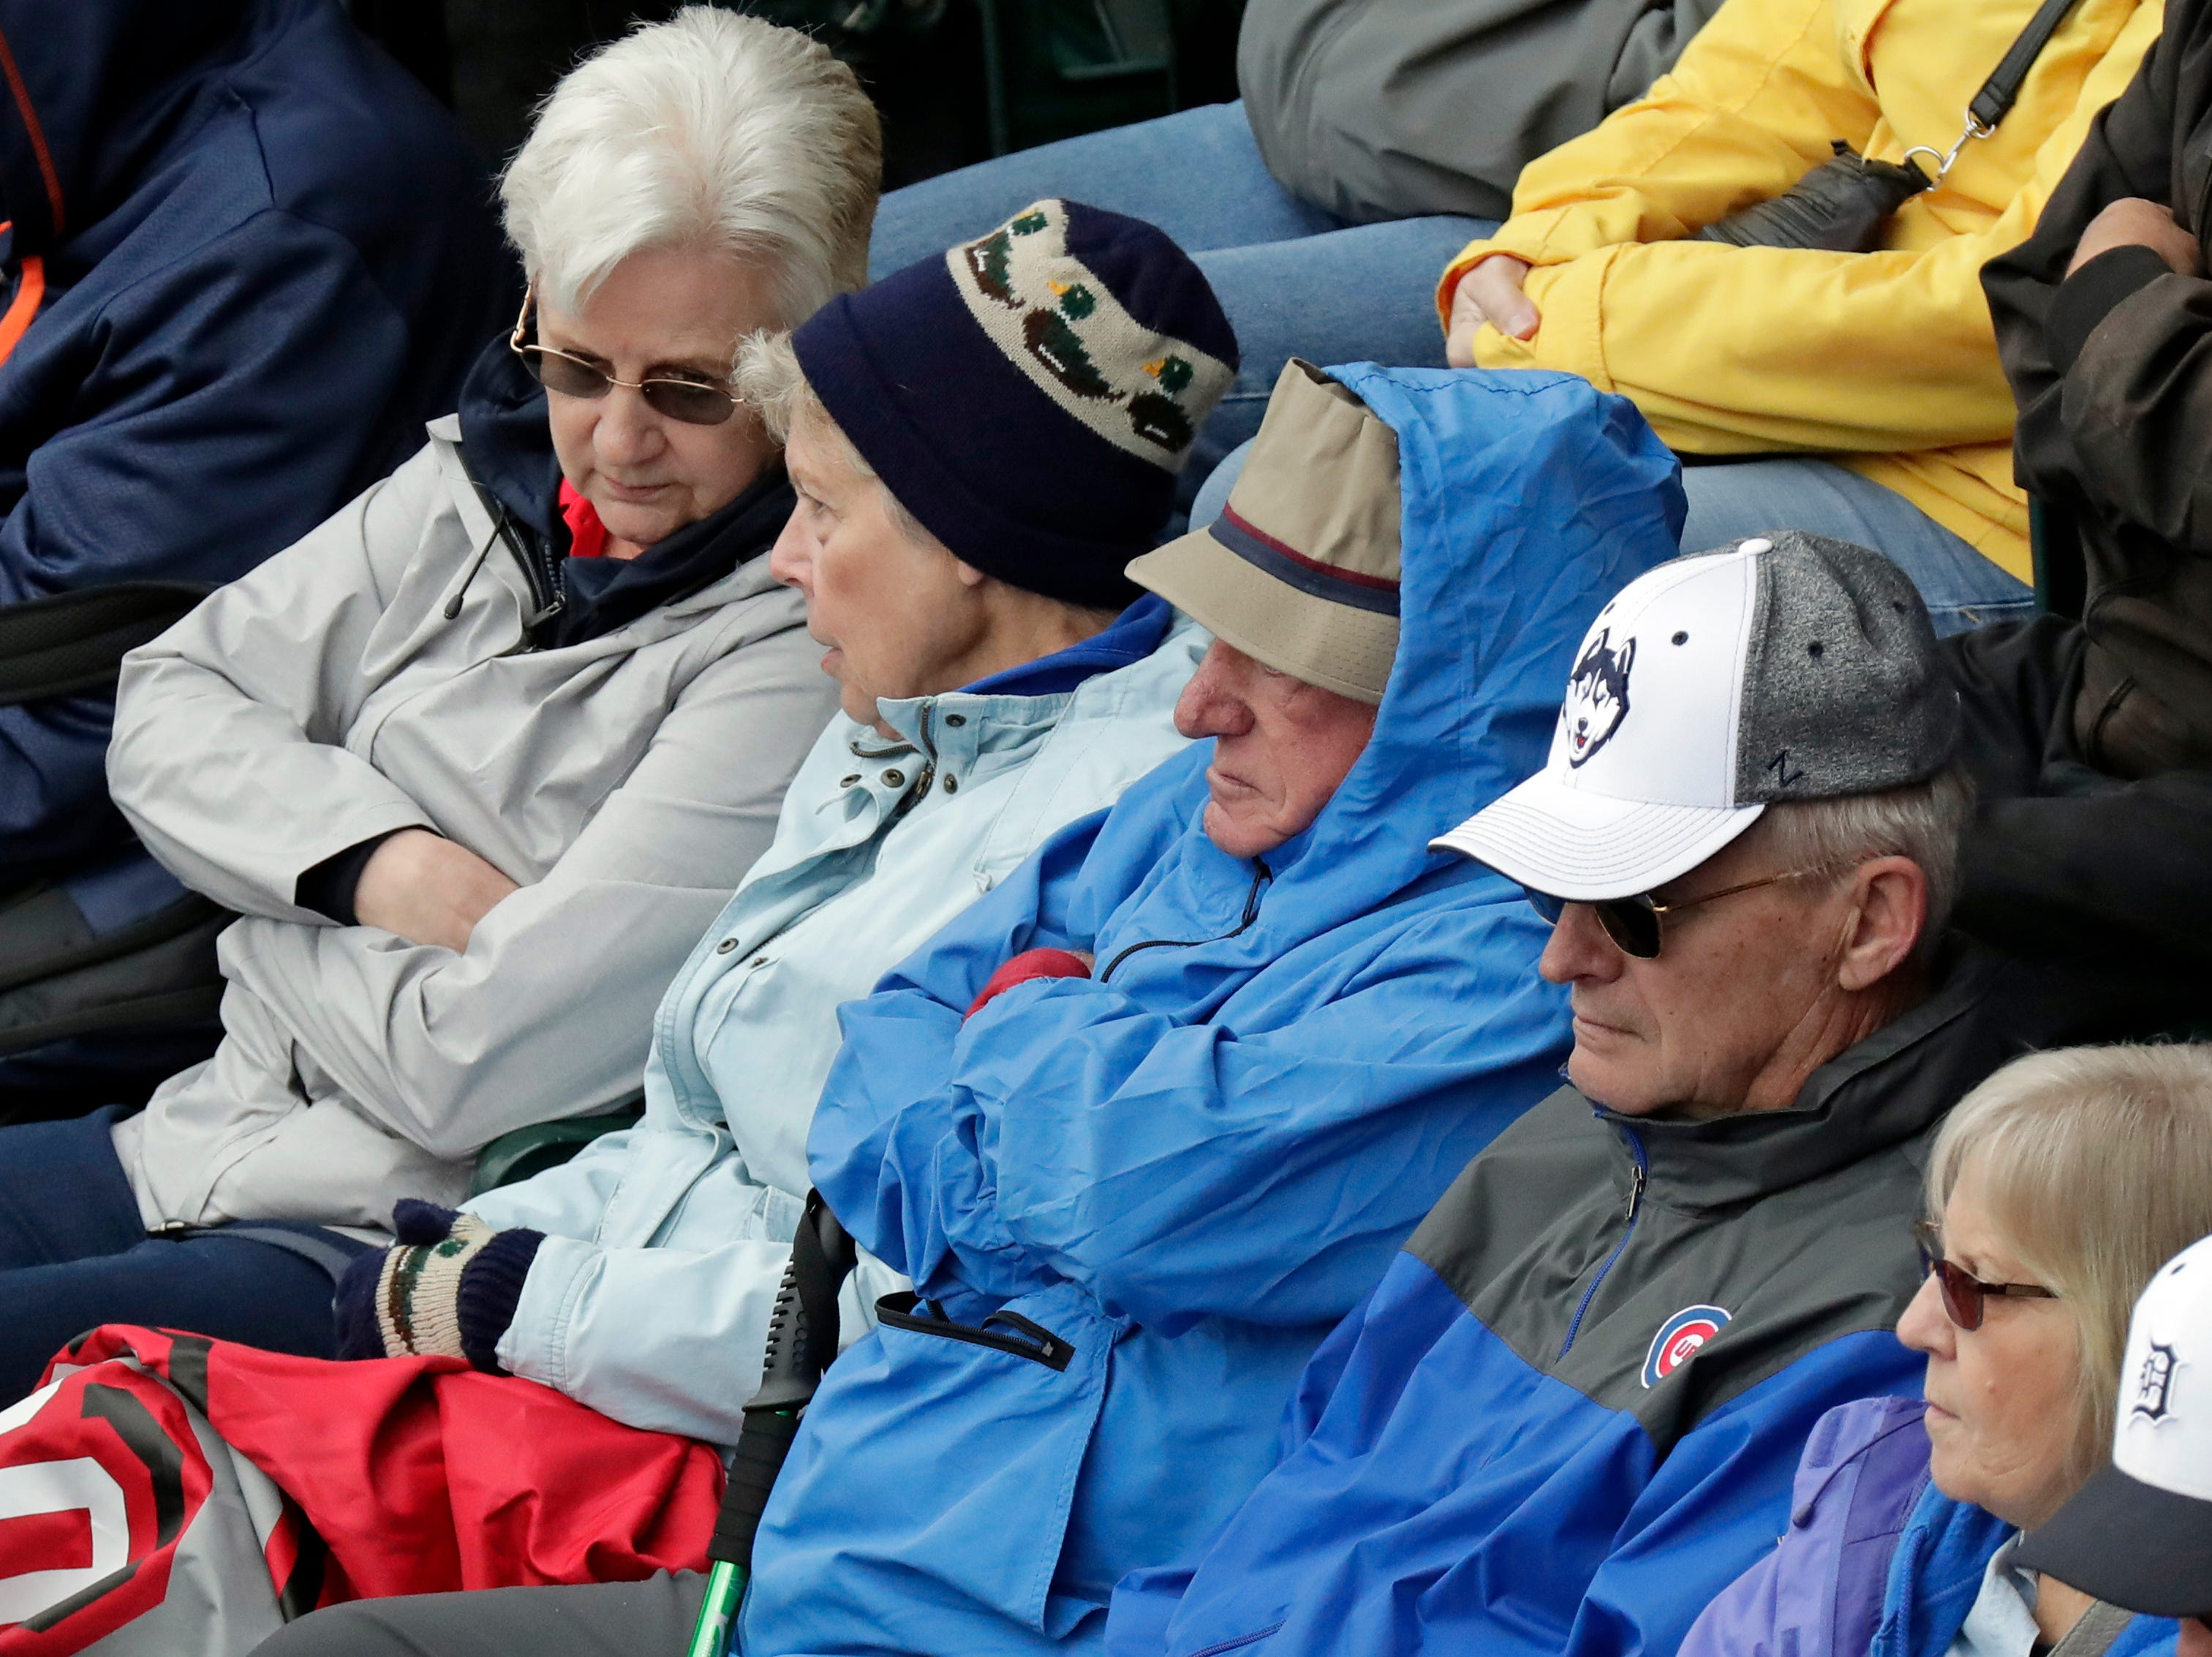 Fans bundle up as they watch a spring baseball exhibition game between the Detroit Tigers and the Toronto Blue Jays, Tuesday, March 5, 2019, in Lakeland, Fla. Temperatures were in the upper 50's during the game.